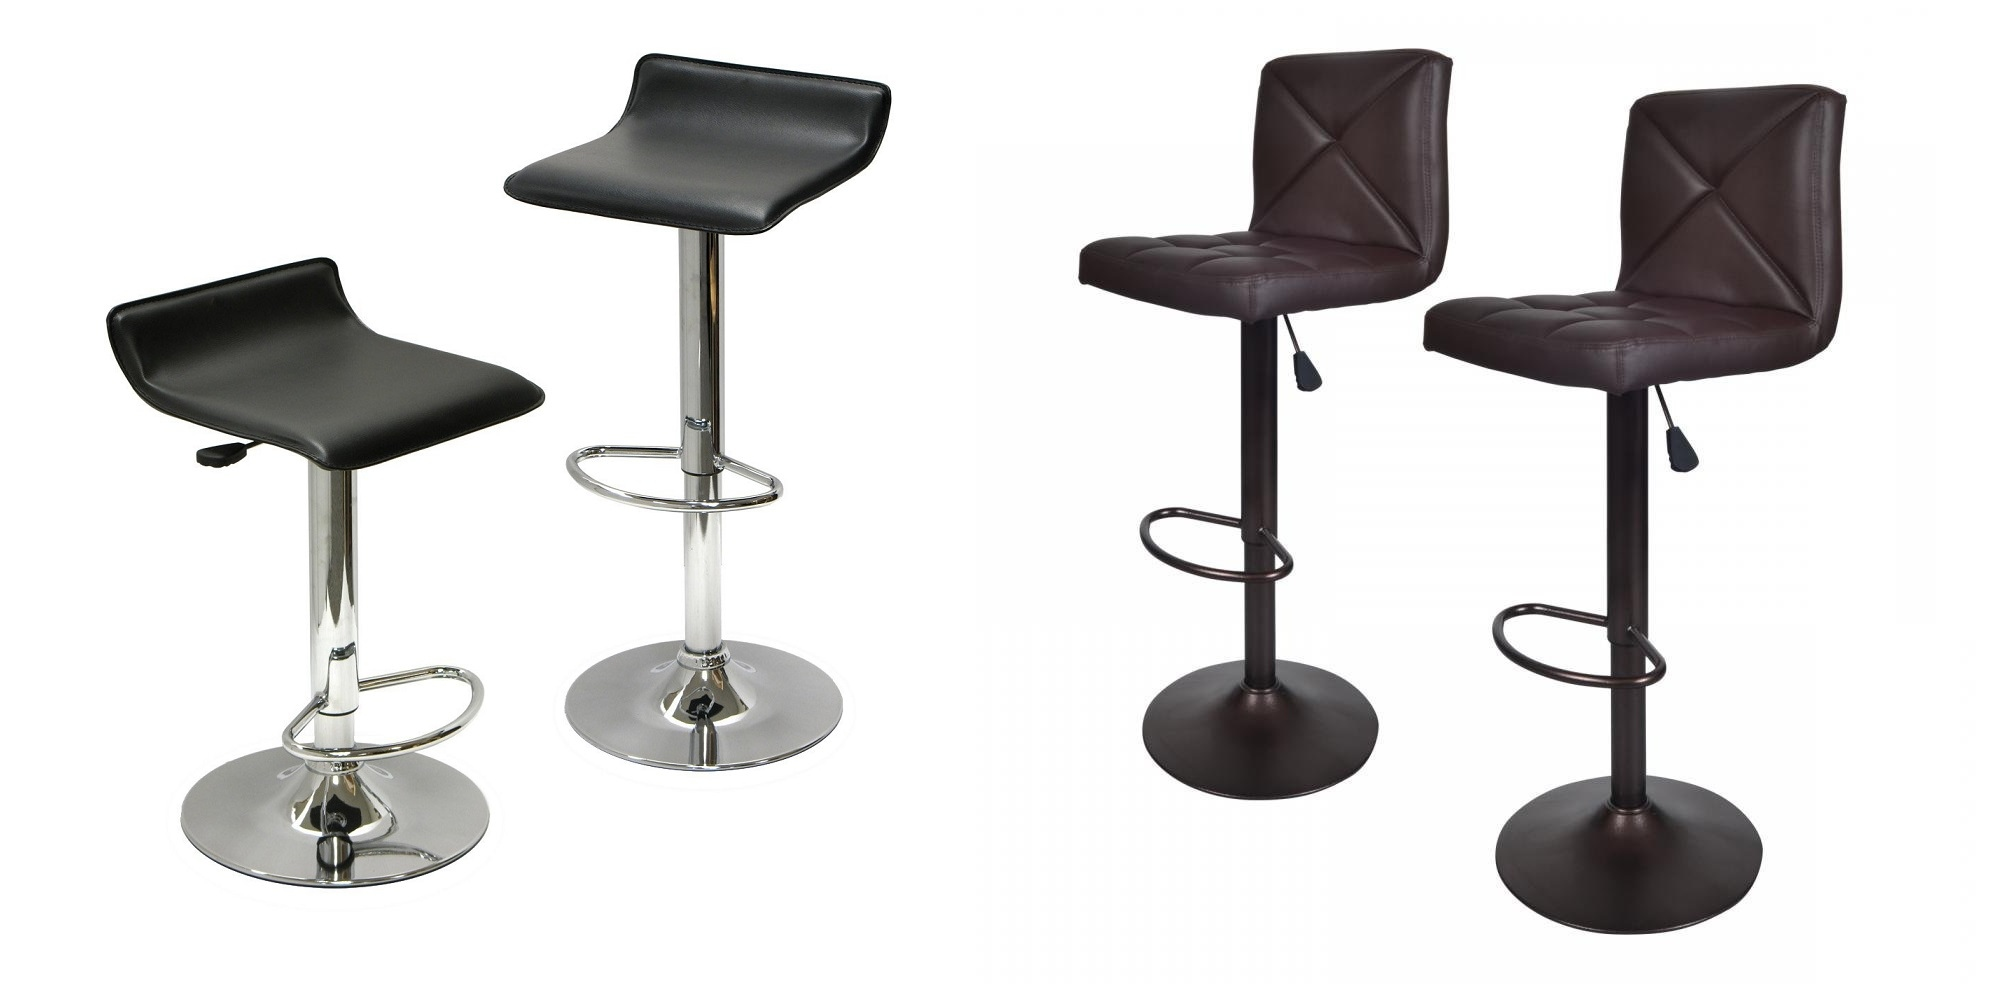 Hydraulic Chairs The Cheapest And Coolest Adjustable Swivel Barstool